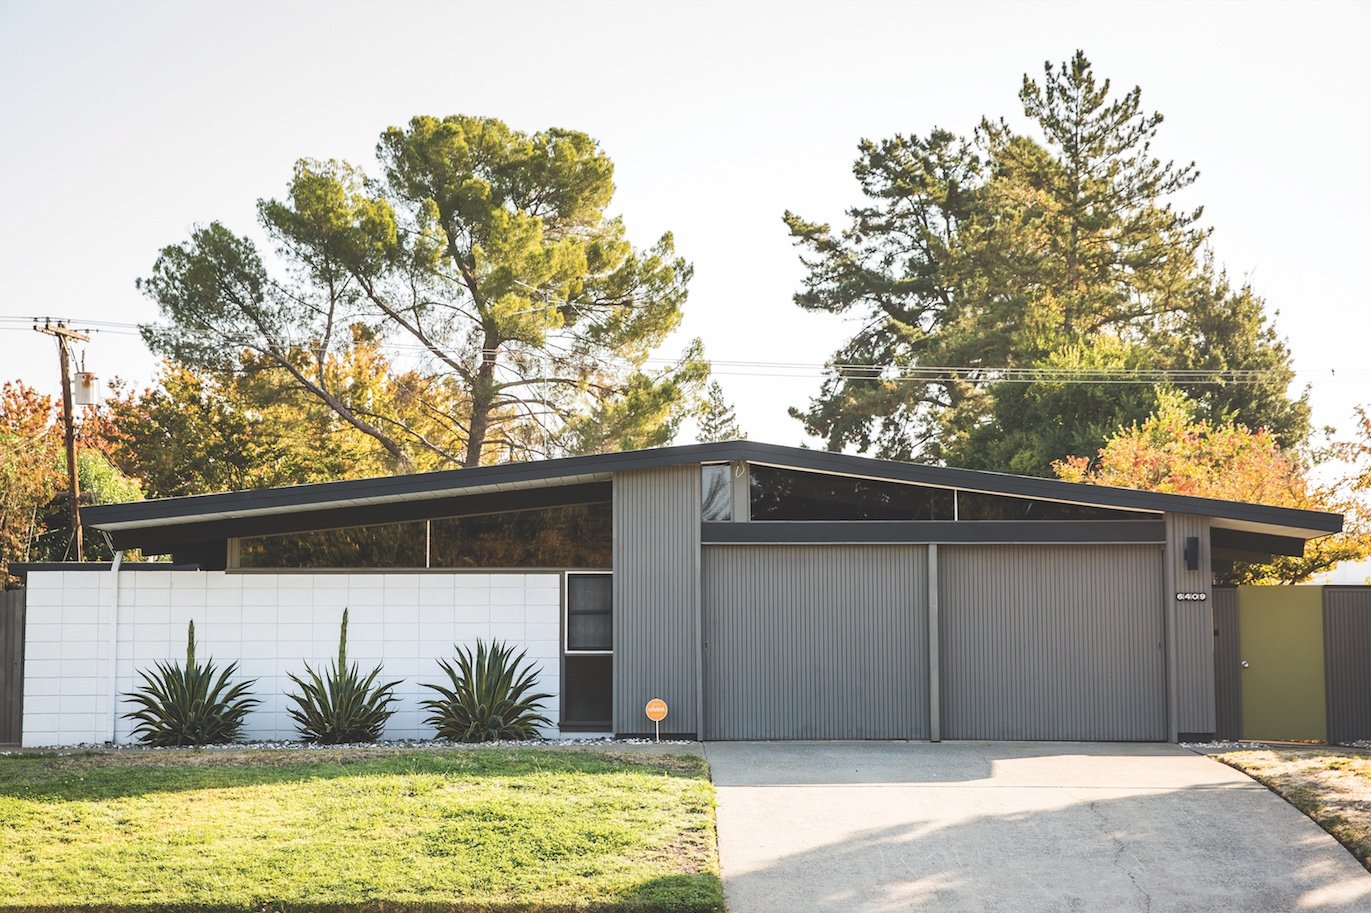 Eichler homes, like this one in South Land Park Hills, are known for their low-sloping roofs and few windows facing the street. (Photo by Max Whittaker)